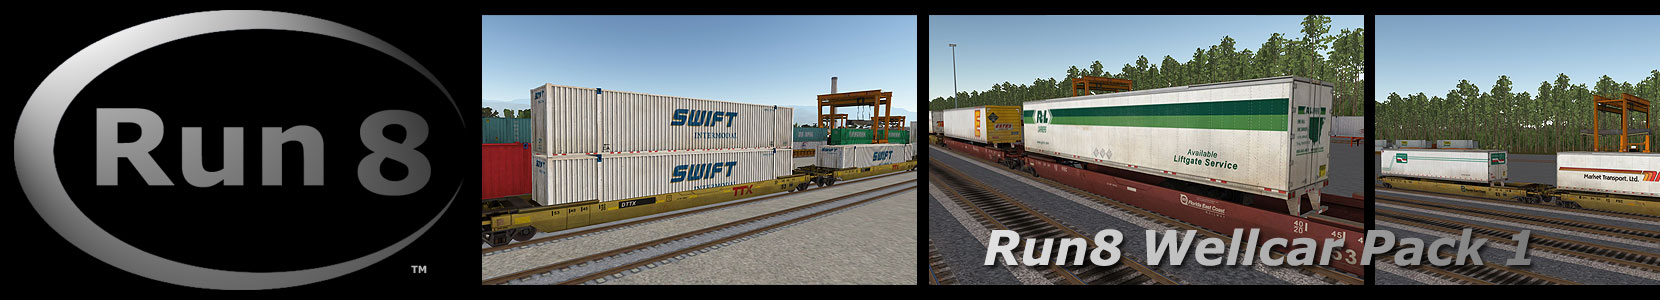 Run8 Train Simulator Wellcar Pack 1